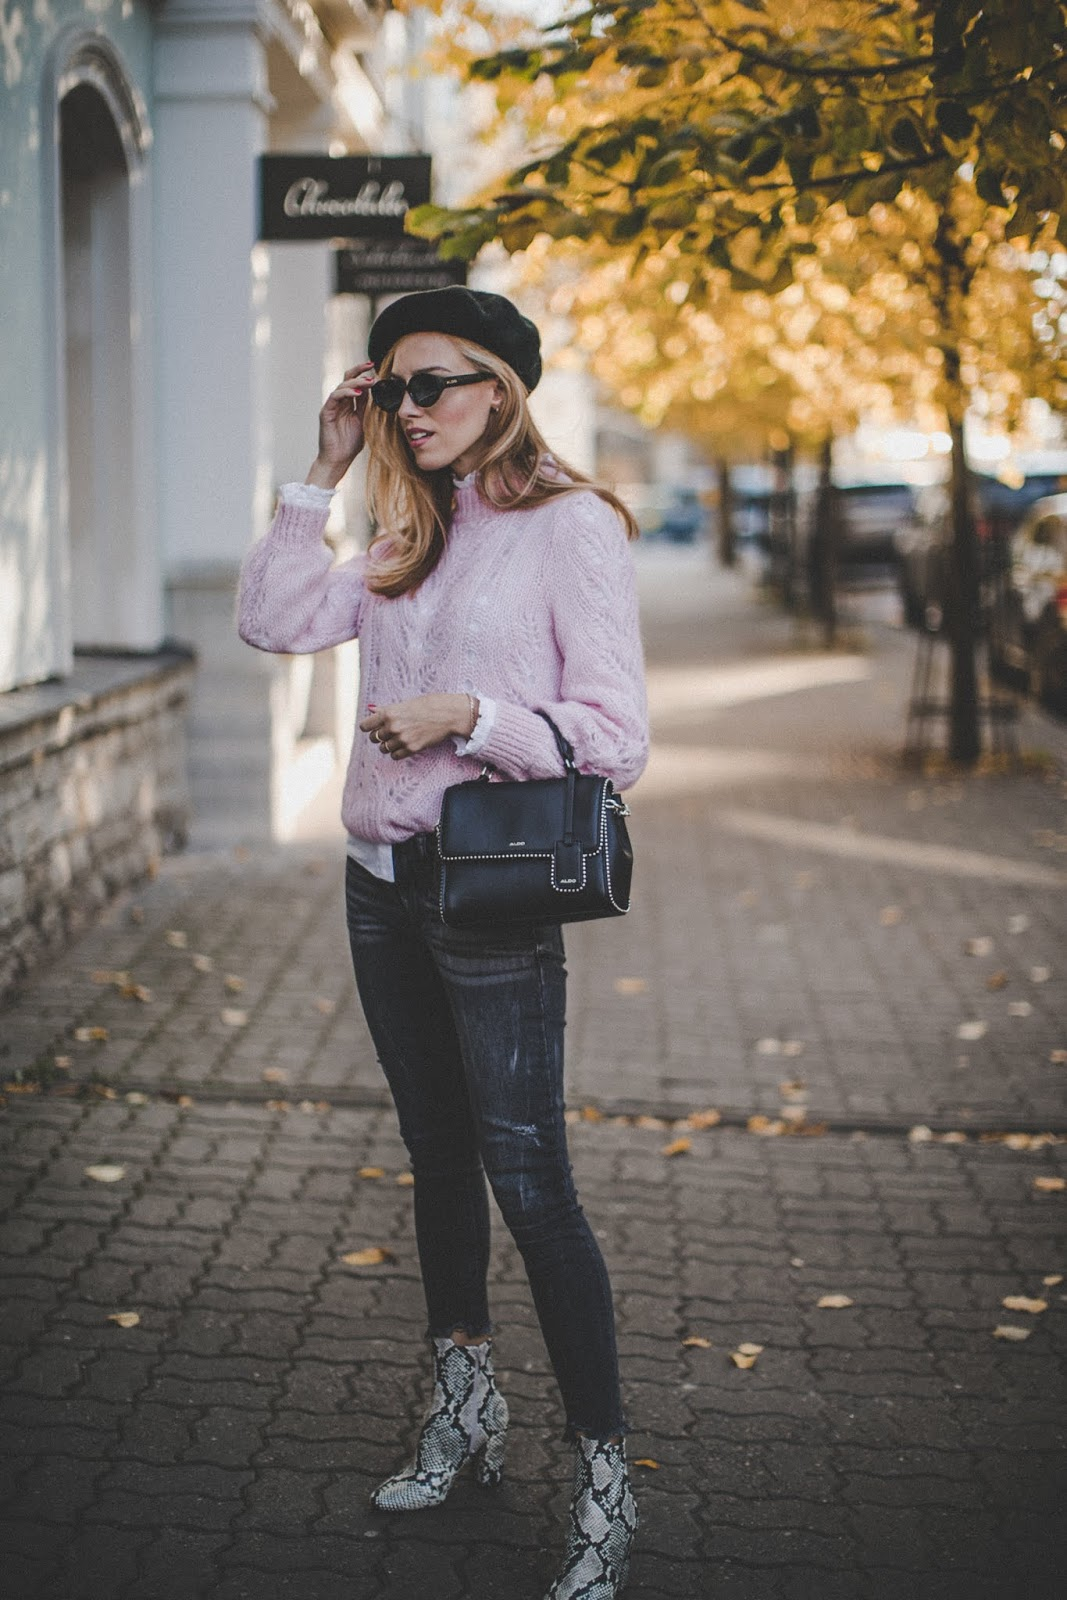 beret hat knit jumper black jeans snake boots fall outfit street style